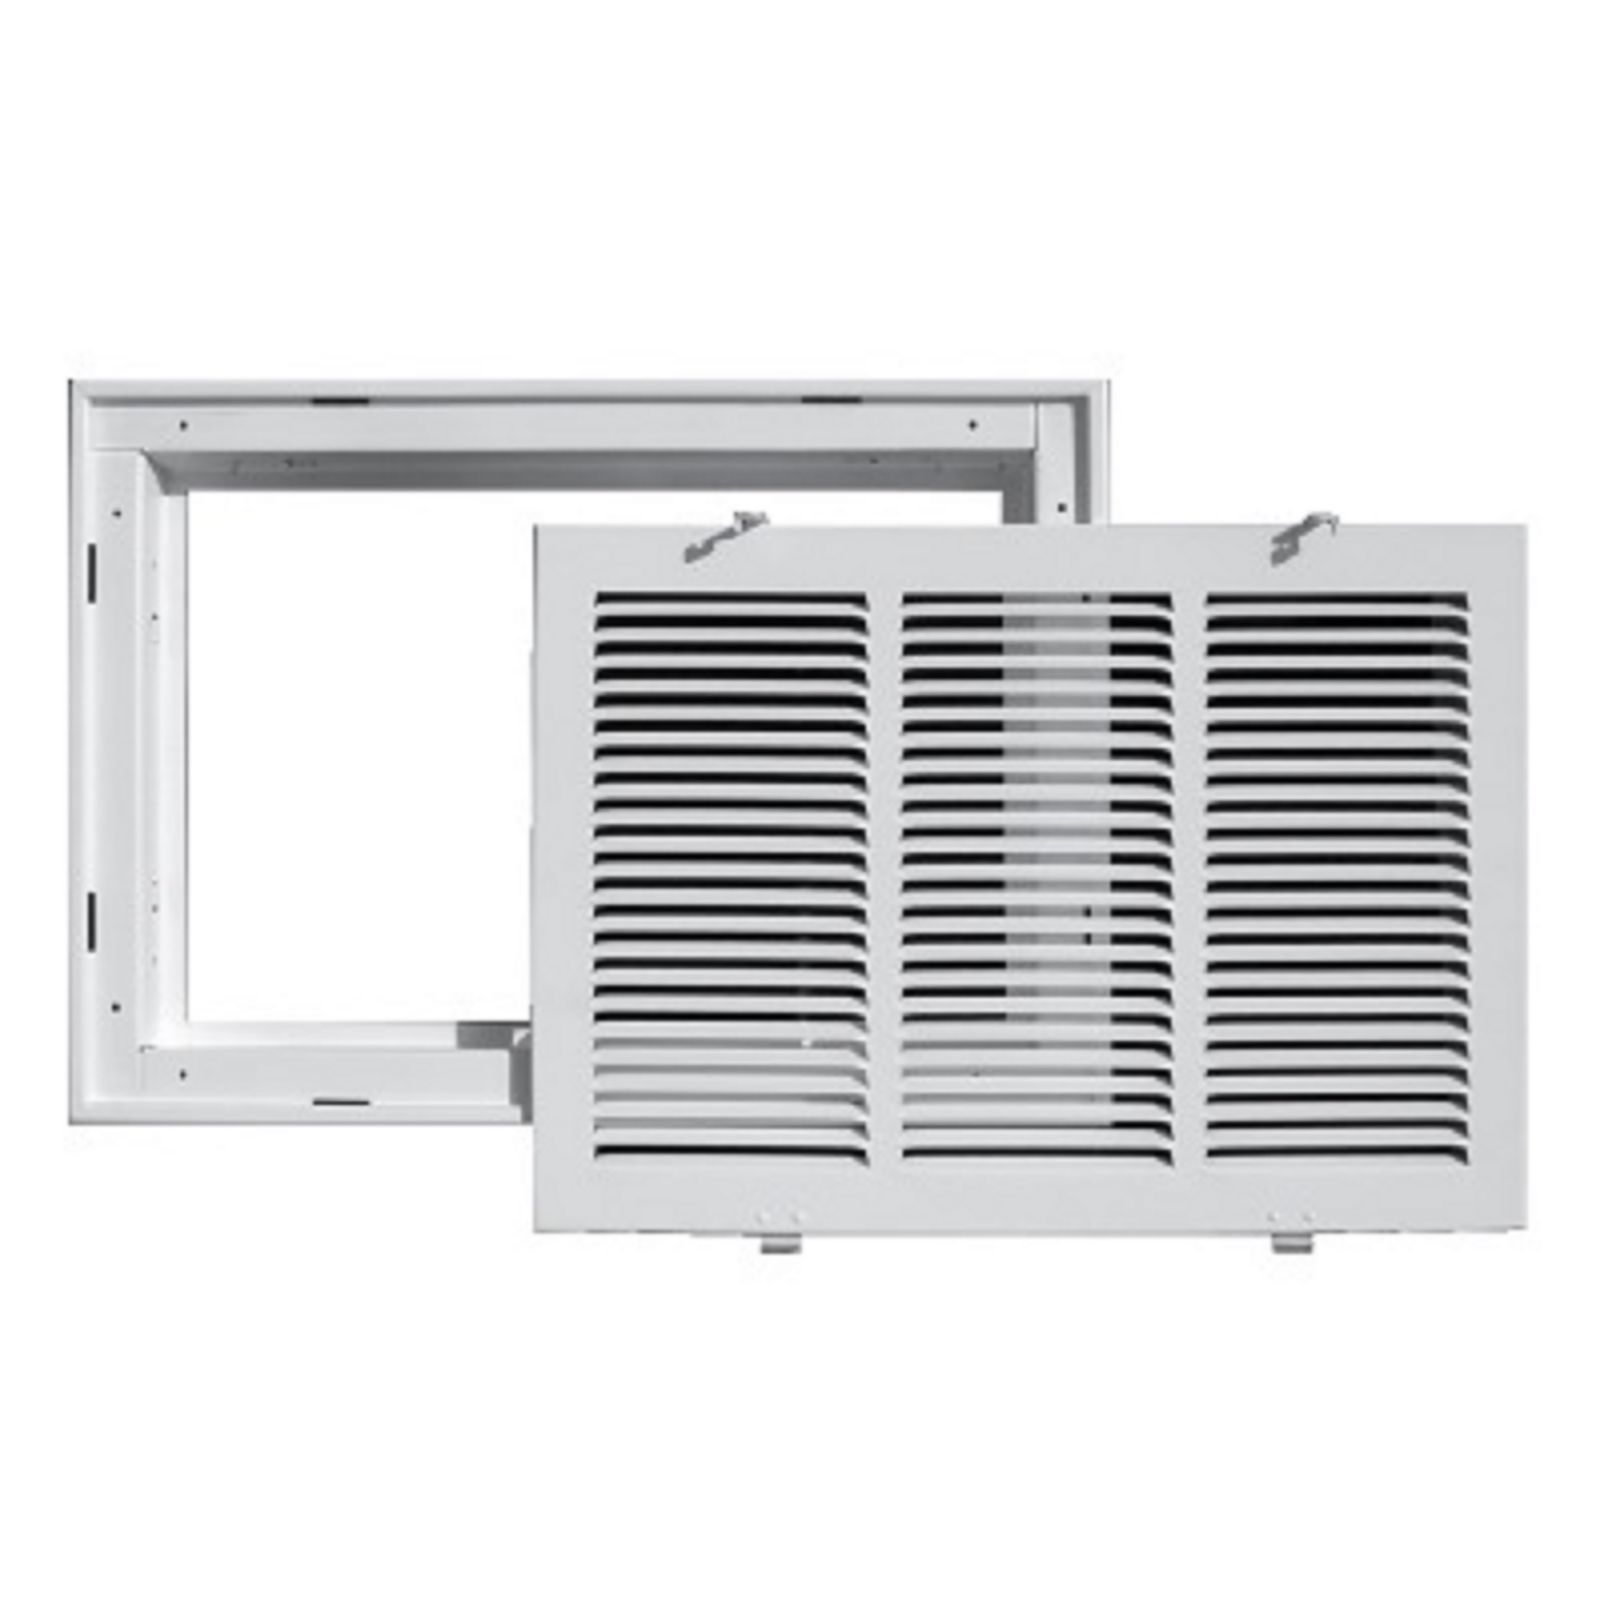 "TRUaire 190RF 30X08 - Steel Return Air Filter Grille With Removable Face, White, 30"" X 08"""